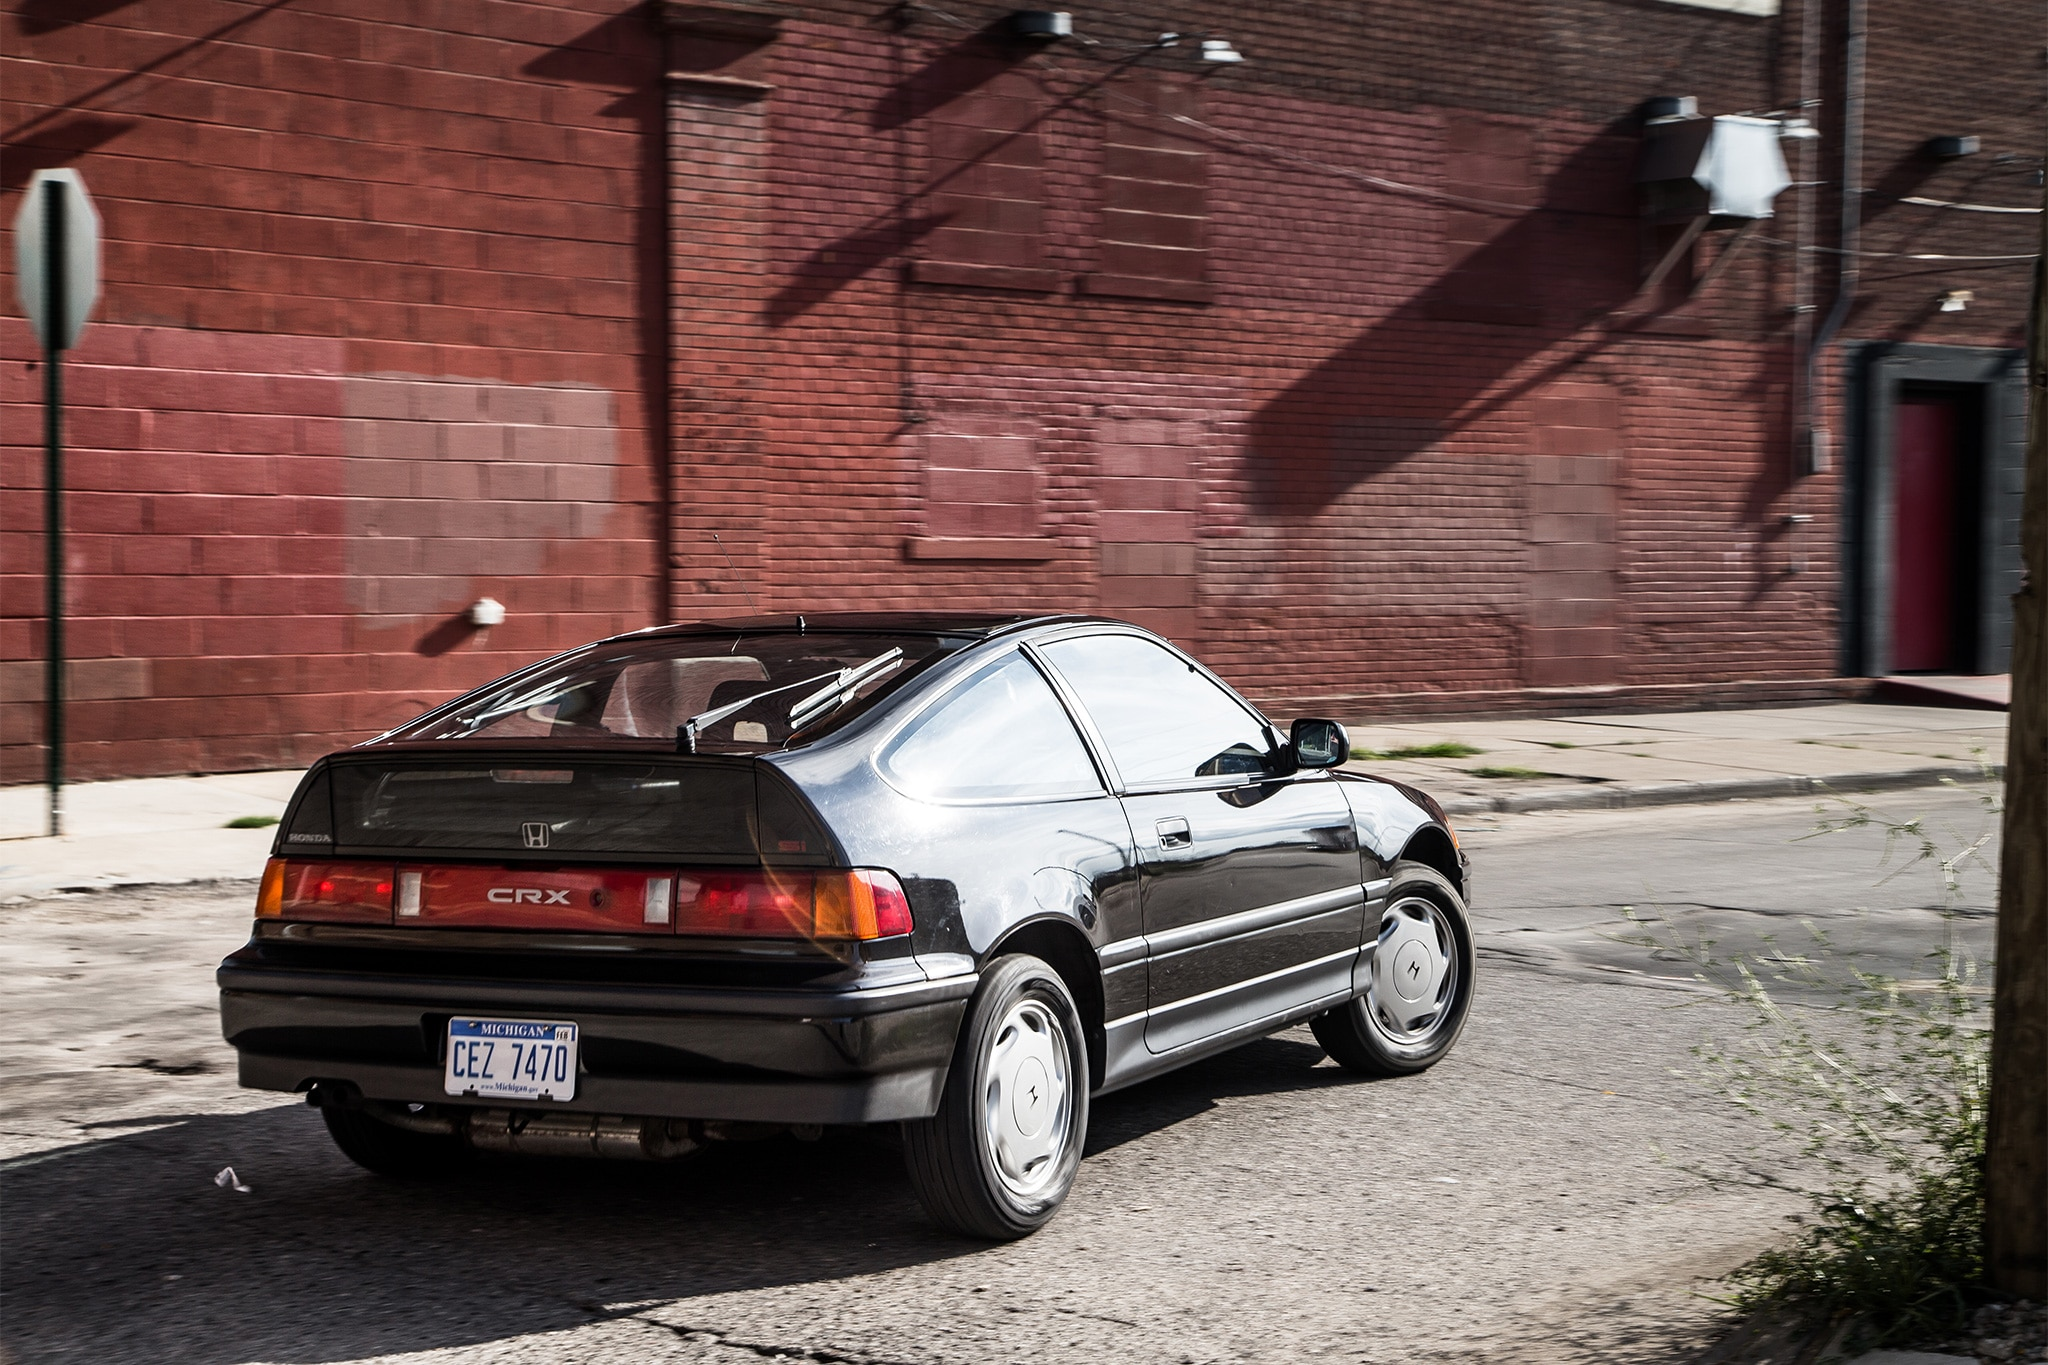 Honda Civic Hatchback X Wallpaper as well Efcivic as well Alien Vs Predator moreover Honda Crx Si Rear Cabin besides D Obd Obd Distributor Wiring Dizzy Plug Locations. on 1988 honda crx si